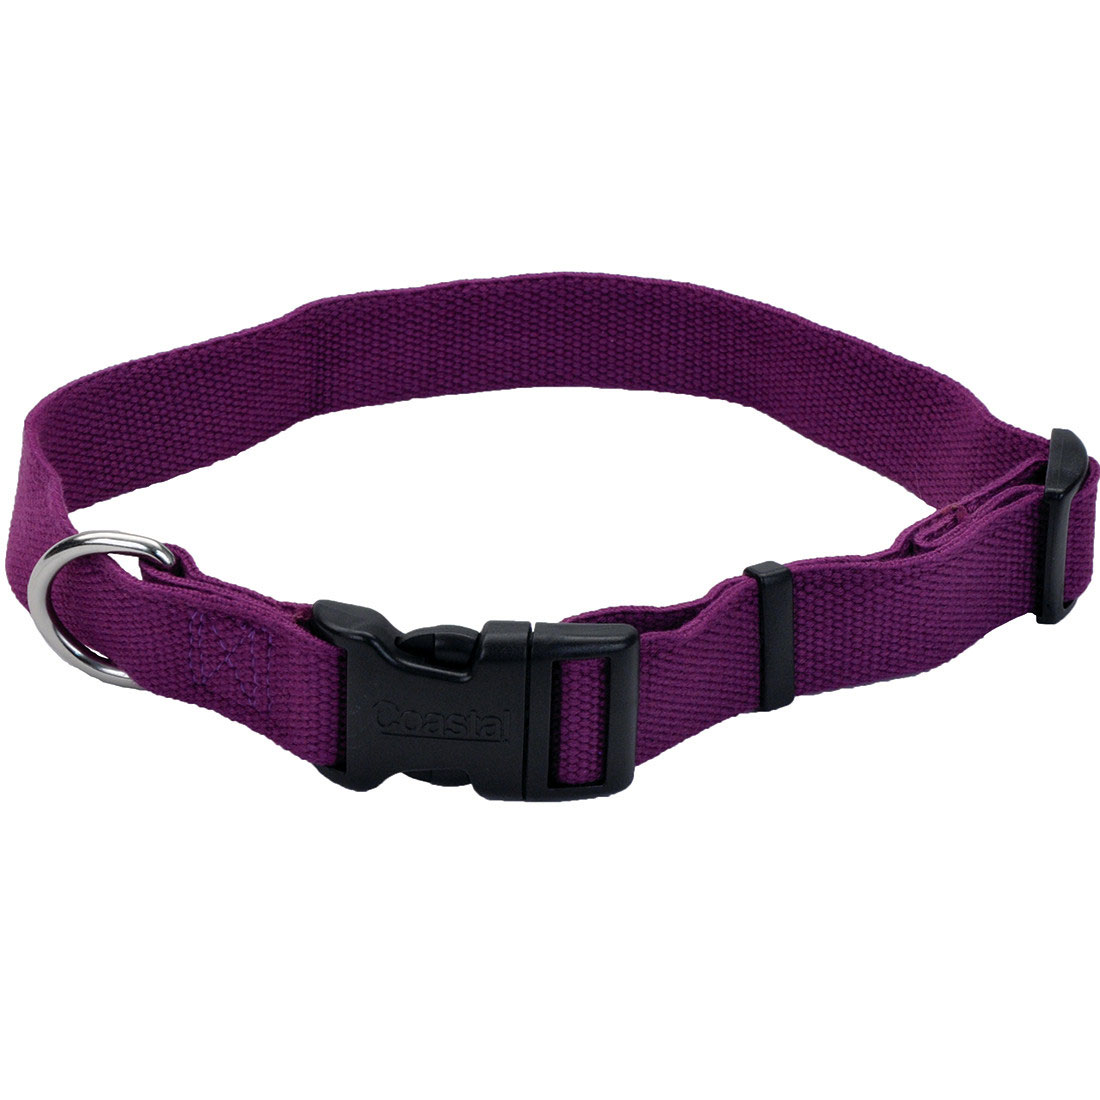 New Earth Soy Adjustable Dog Collar, Eggplant, 3/8-in x 6-8-in